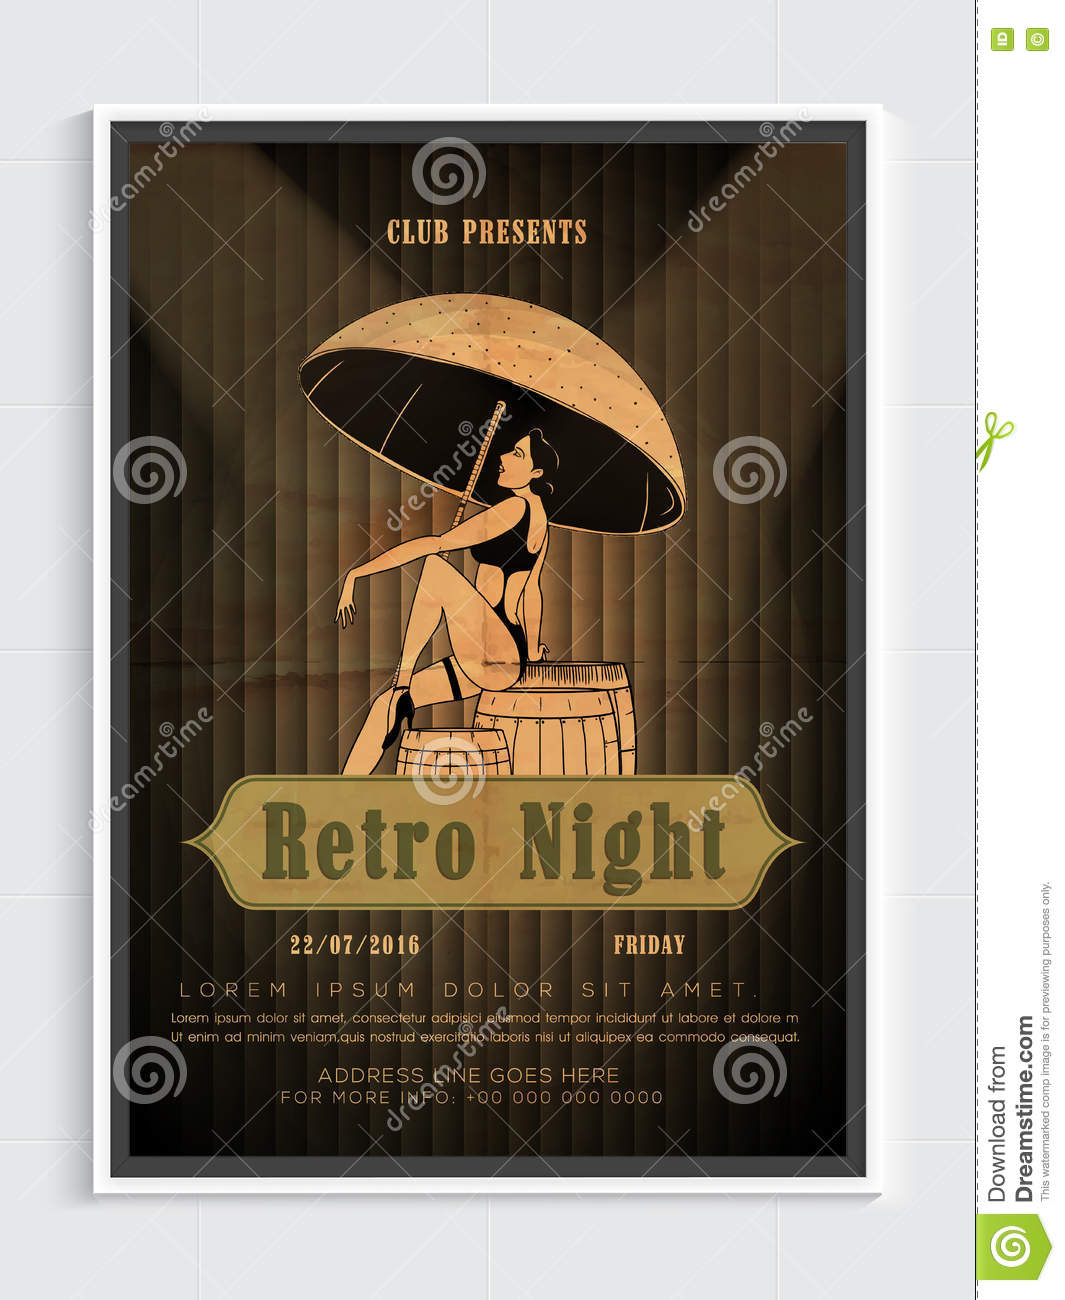 Retro Night Party Flyer Template Or Banner Design – Retro Flyer Template